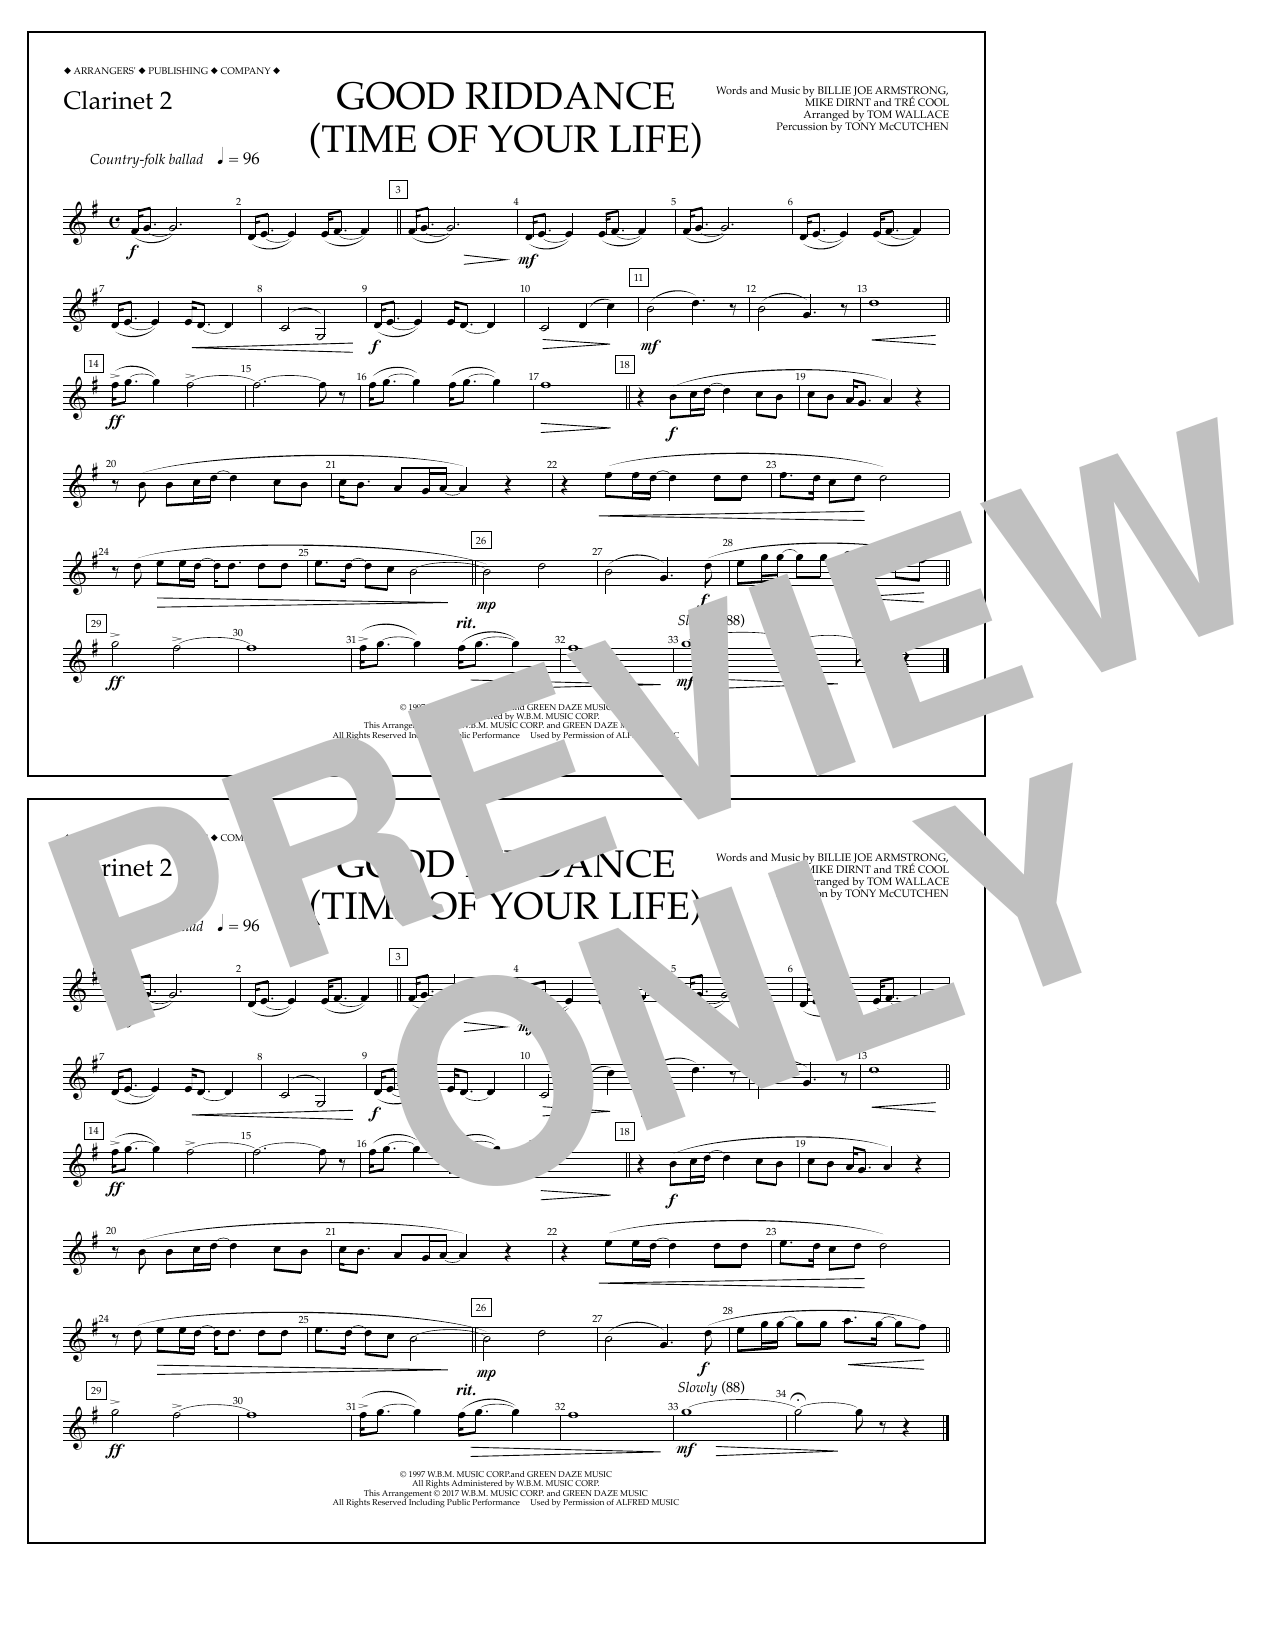 Good Riddance (Time of Your Life) - Clarinet 2 Sheet Music